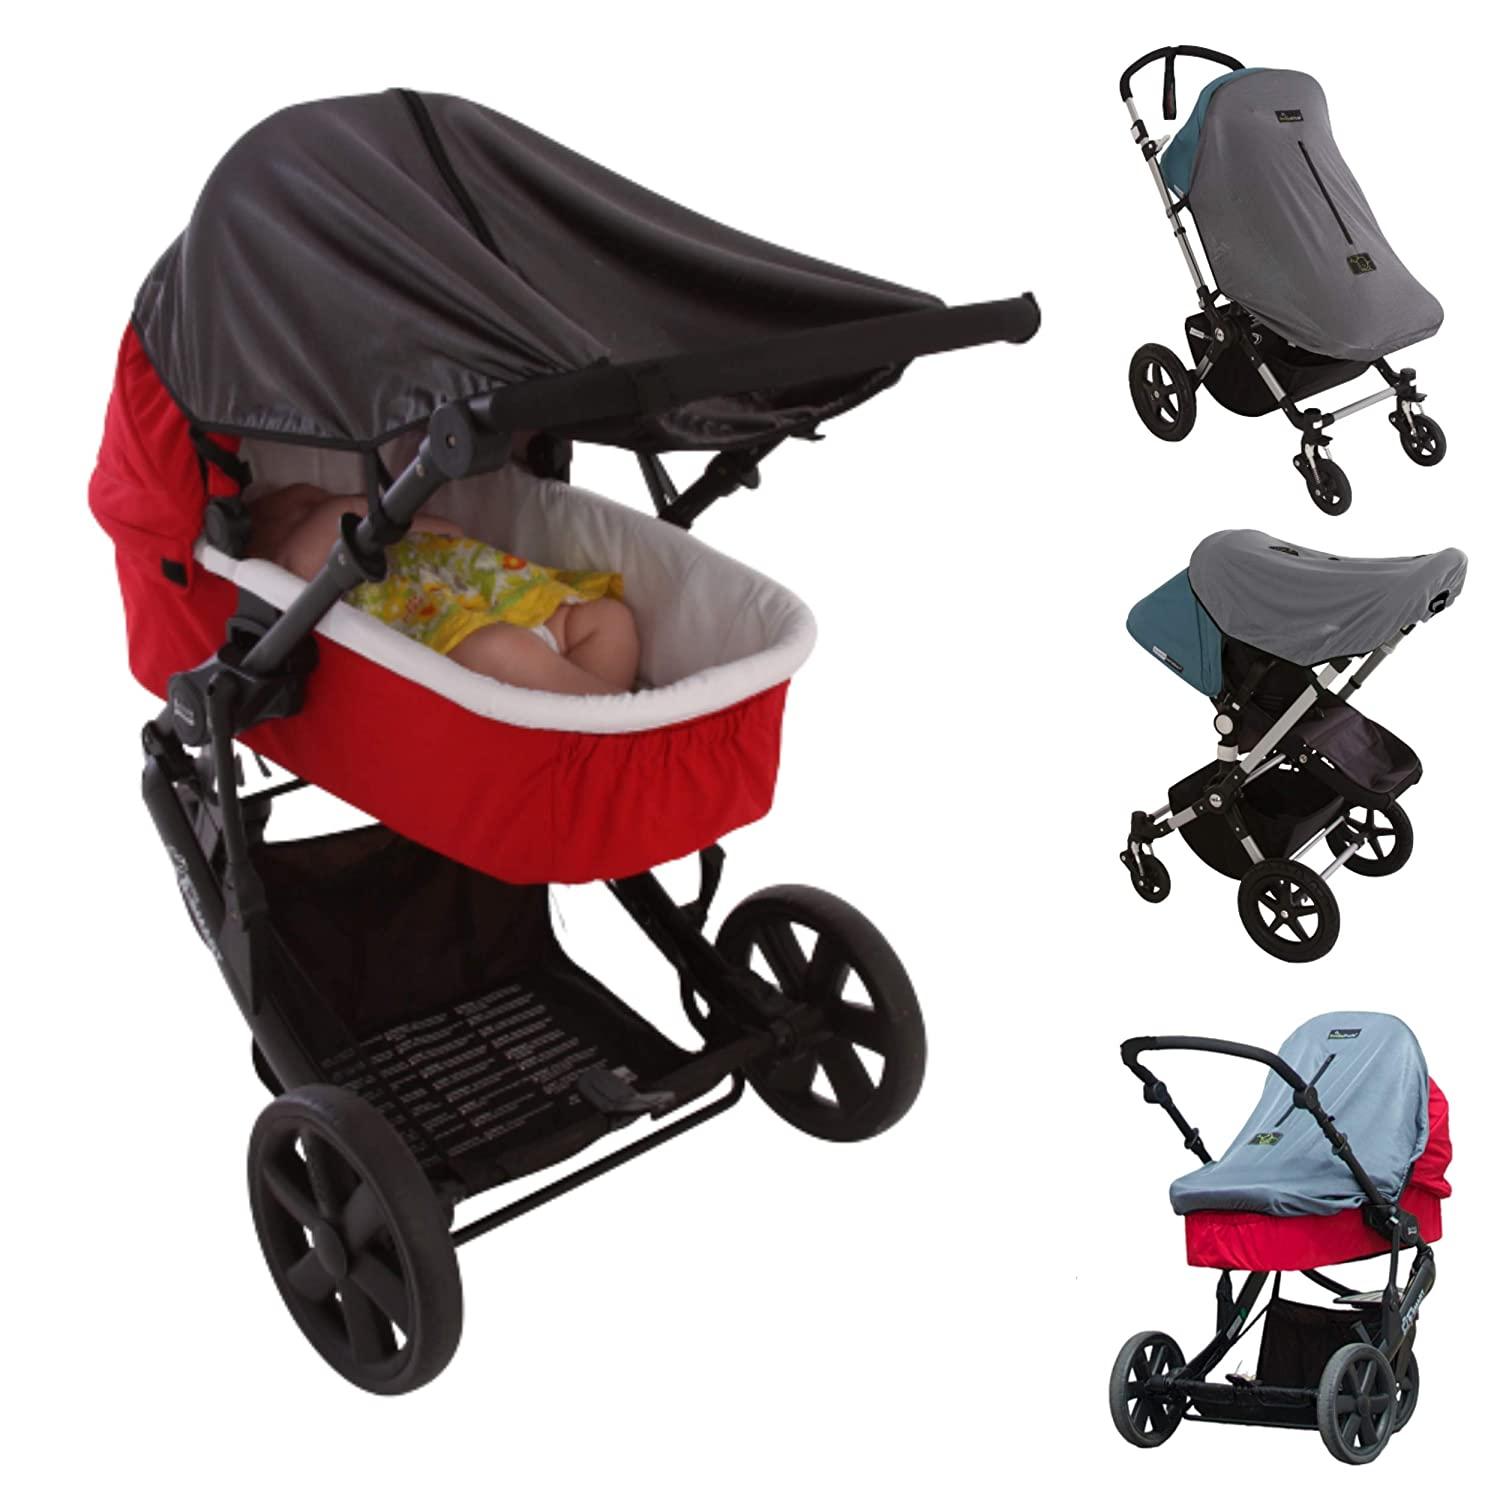 NEW One Size Fits All Sleep Shade for Infant Car Seats Snooze Shade